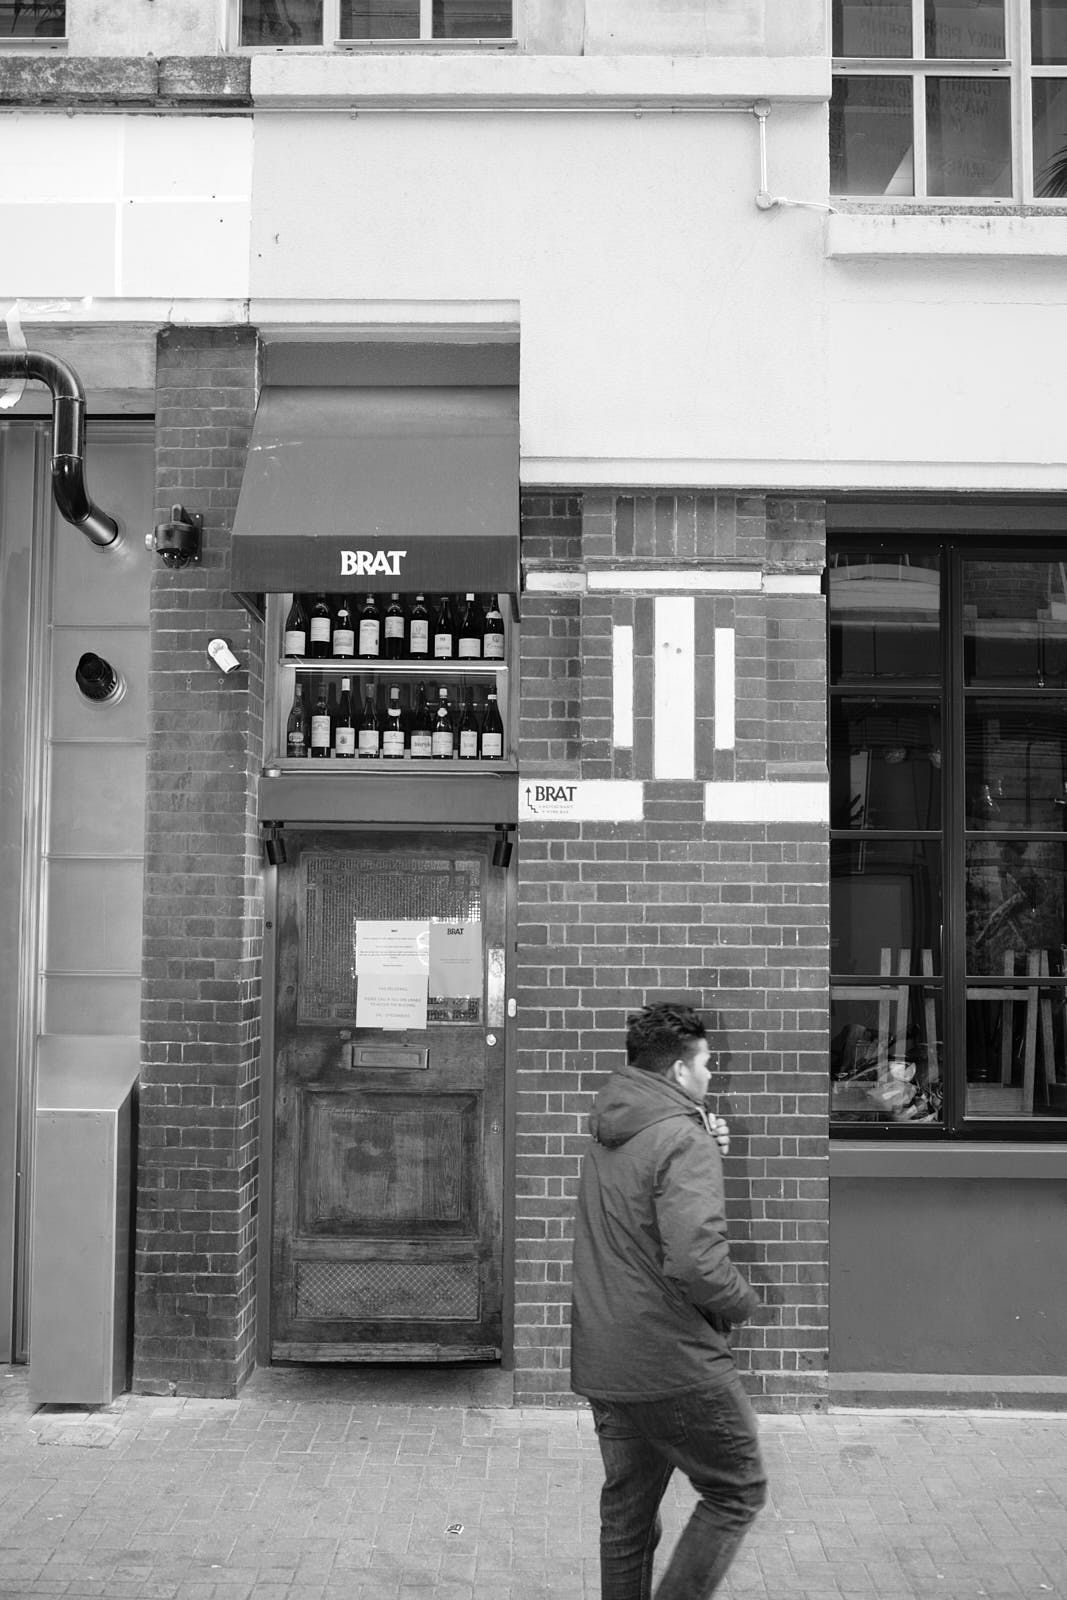 A man stands outside the entrance to Brat restaurant in Shoreditch, London